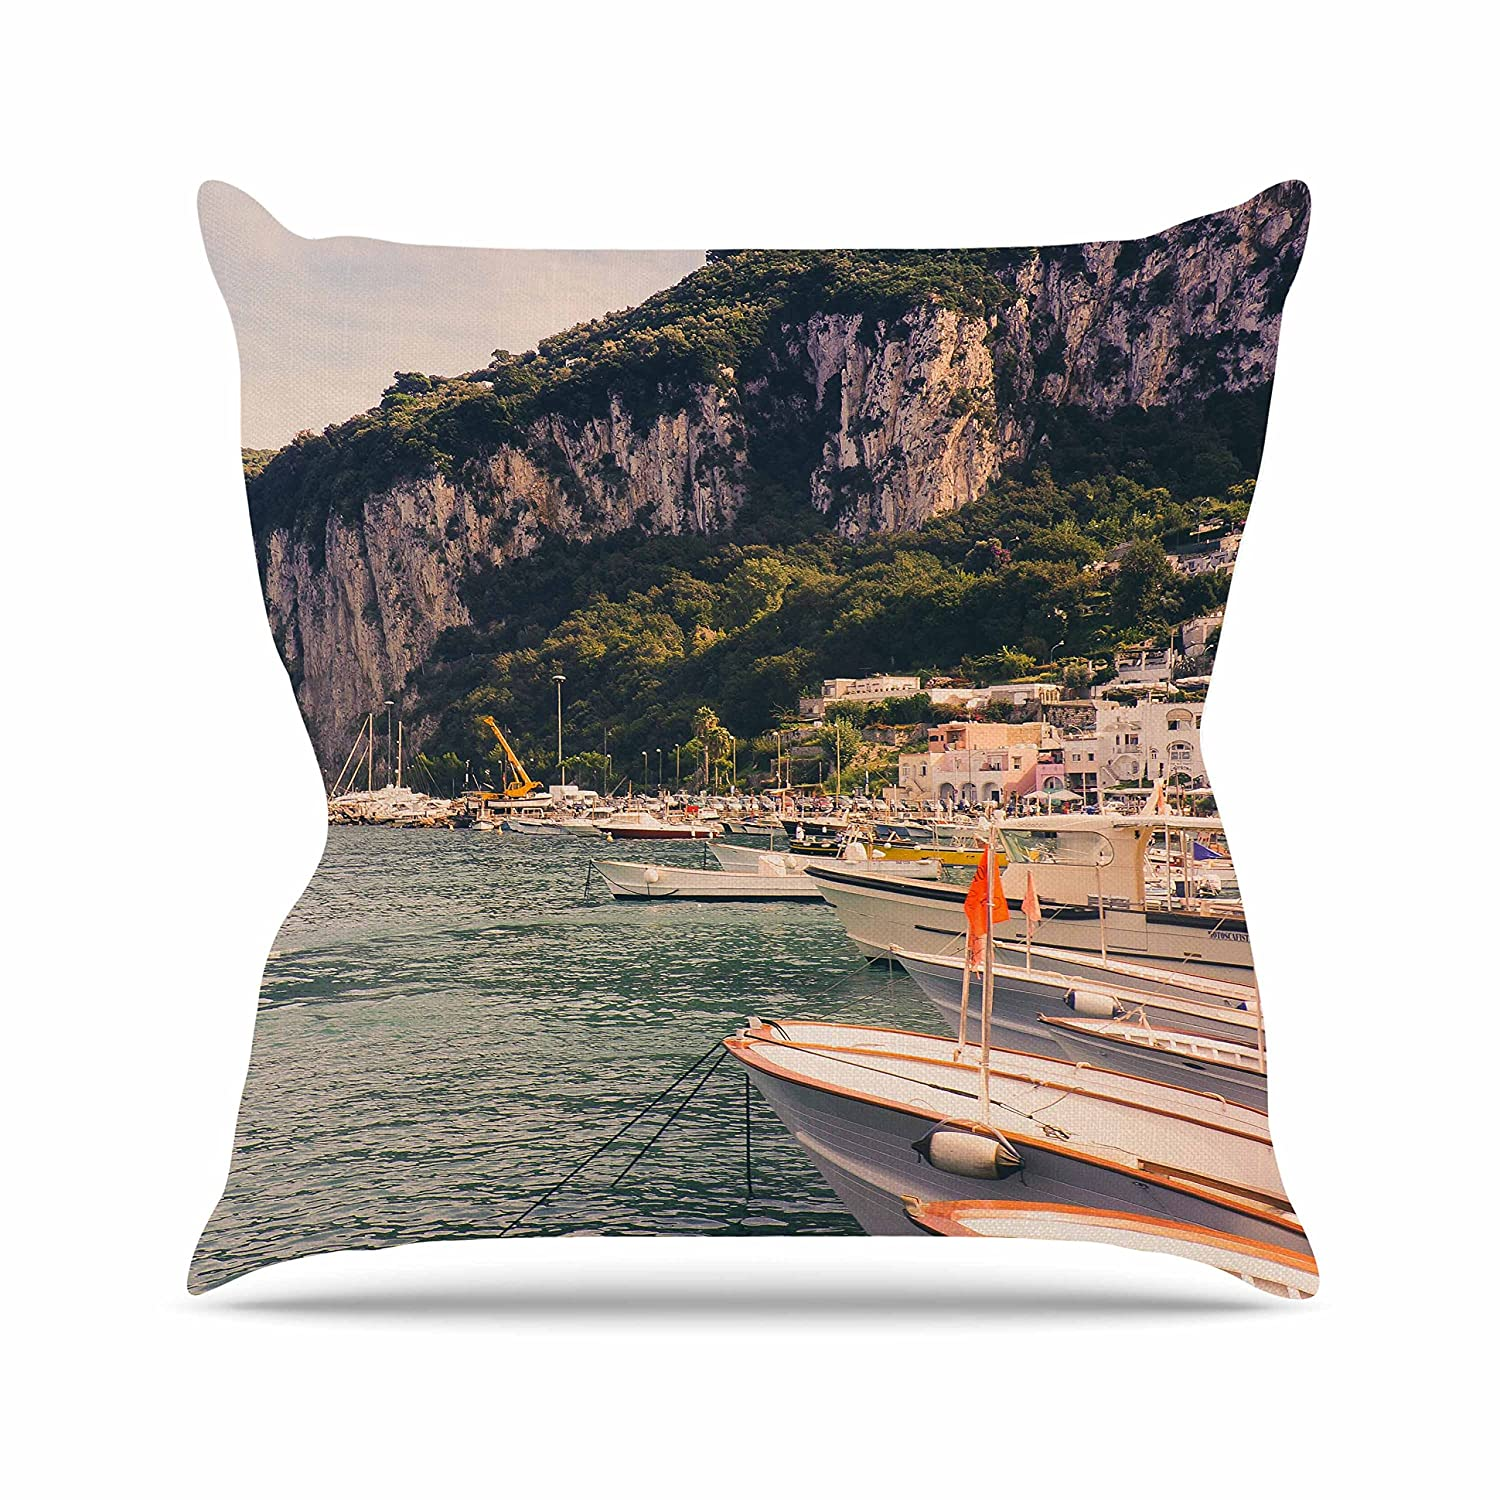 20 by 20 Kess InHouse Violet Hudson Boats of Paradise Teal Green Throw Pillow